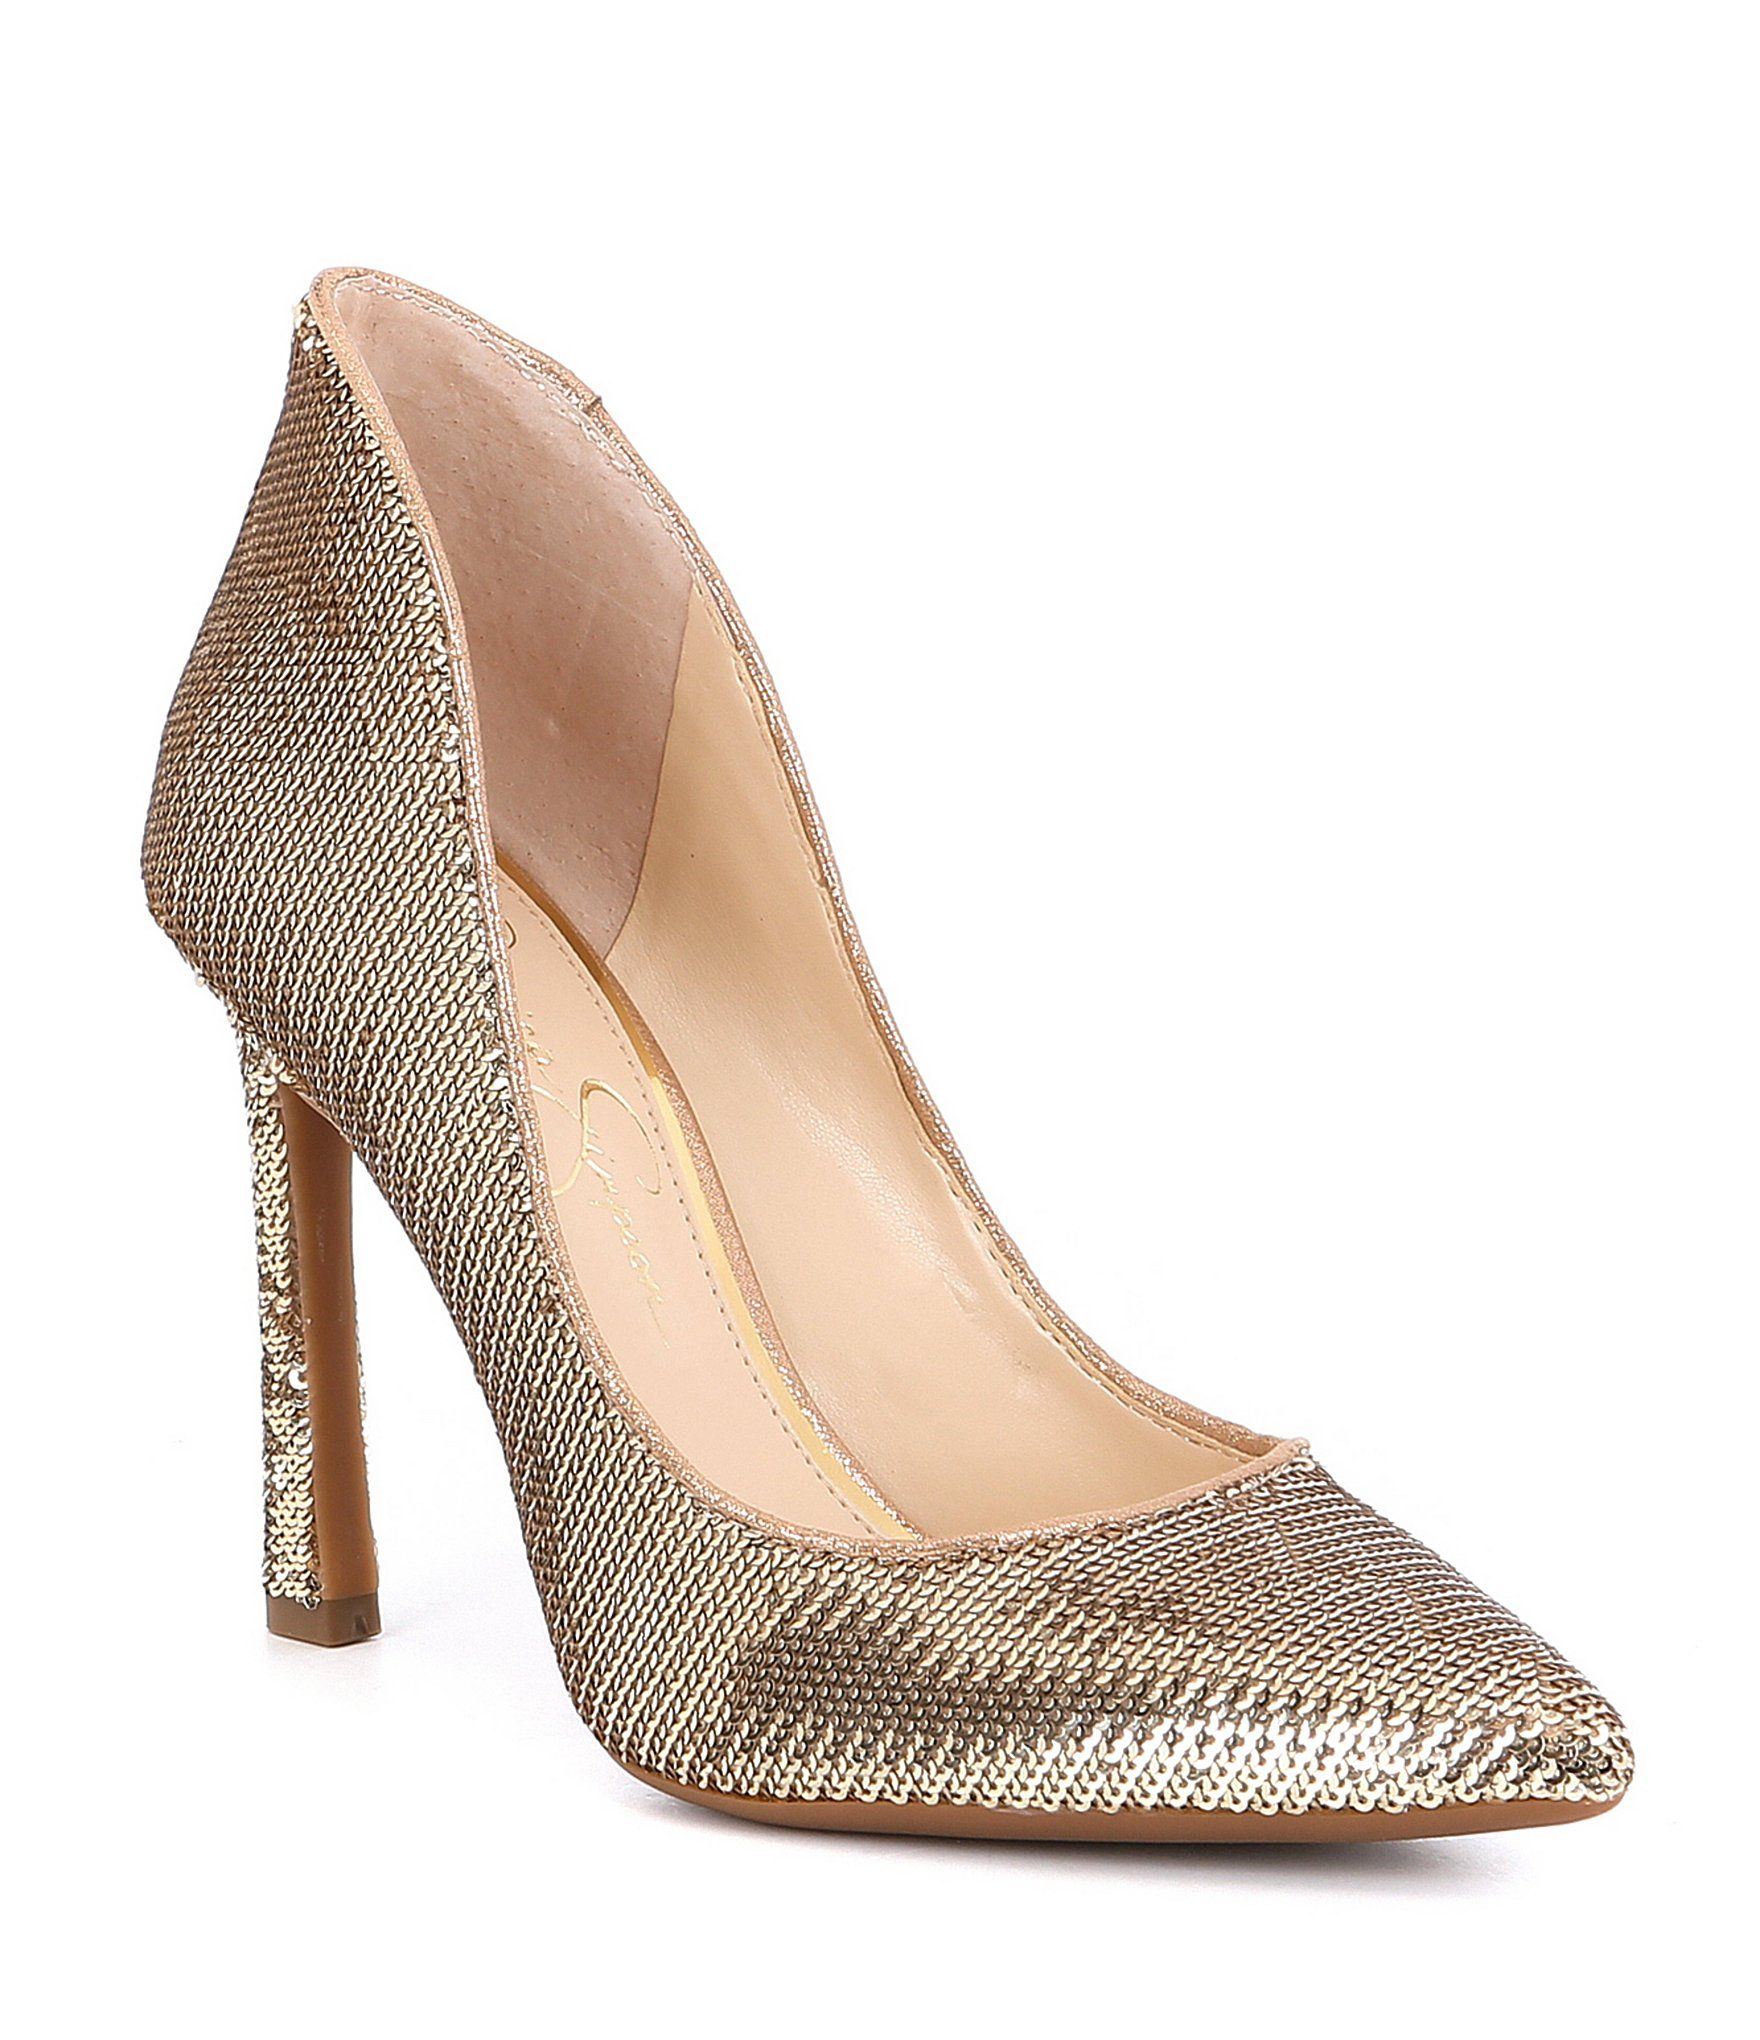 975e1b634c5 Shop for Jessica Simpson Parma Fabric Sequin Pumps at Dillards.com. Visit  Dillards.com to find clothing